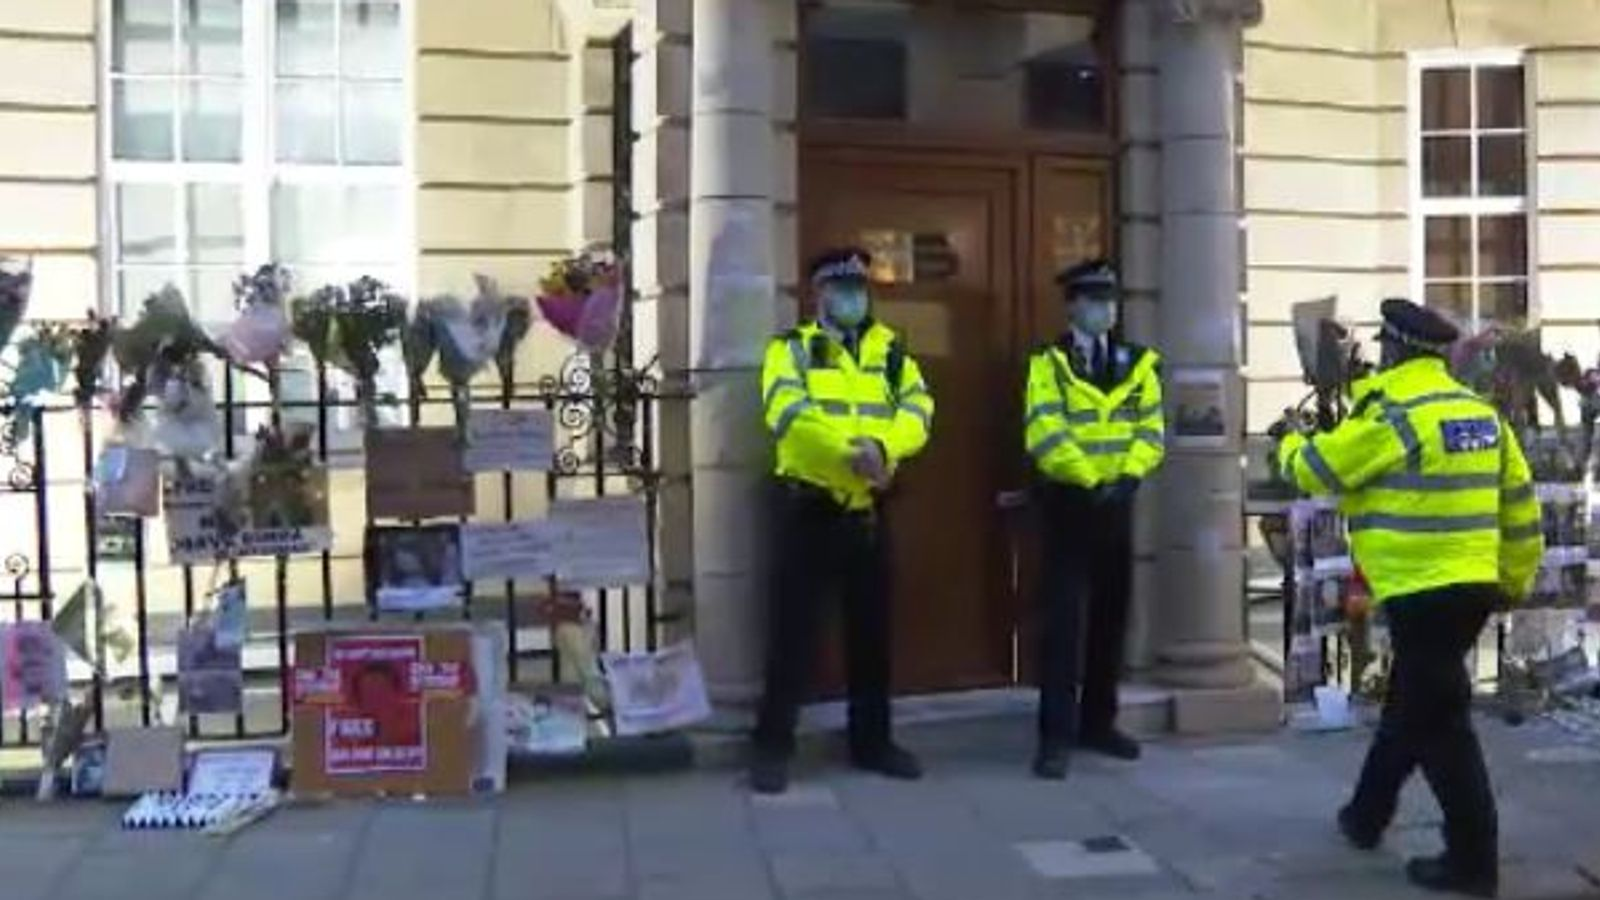 Myanmar's UK ambassador 'locked out' of London embassy after speaking out against coup